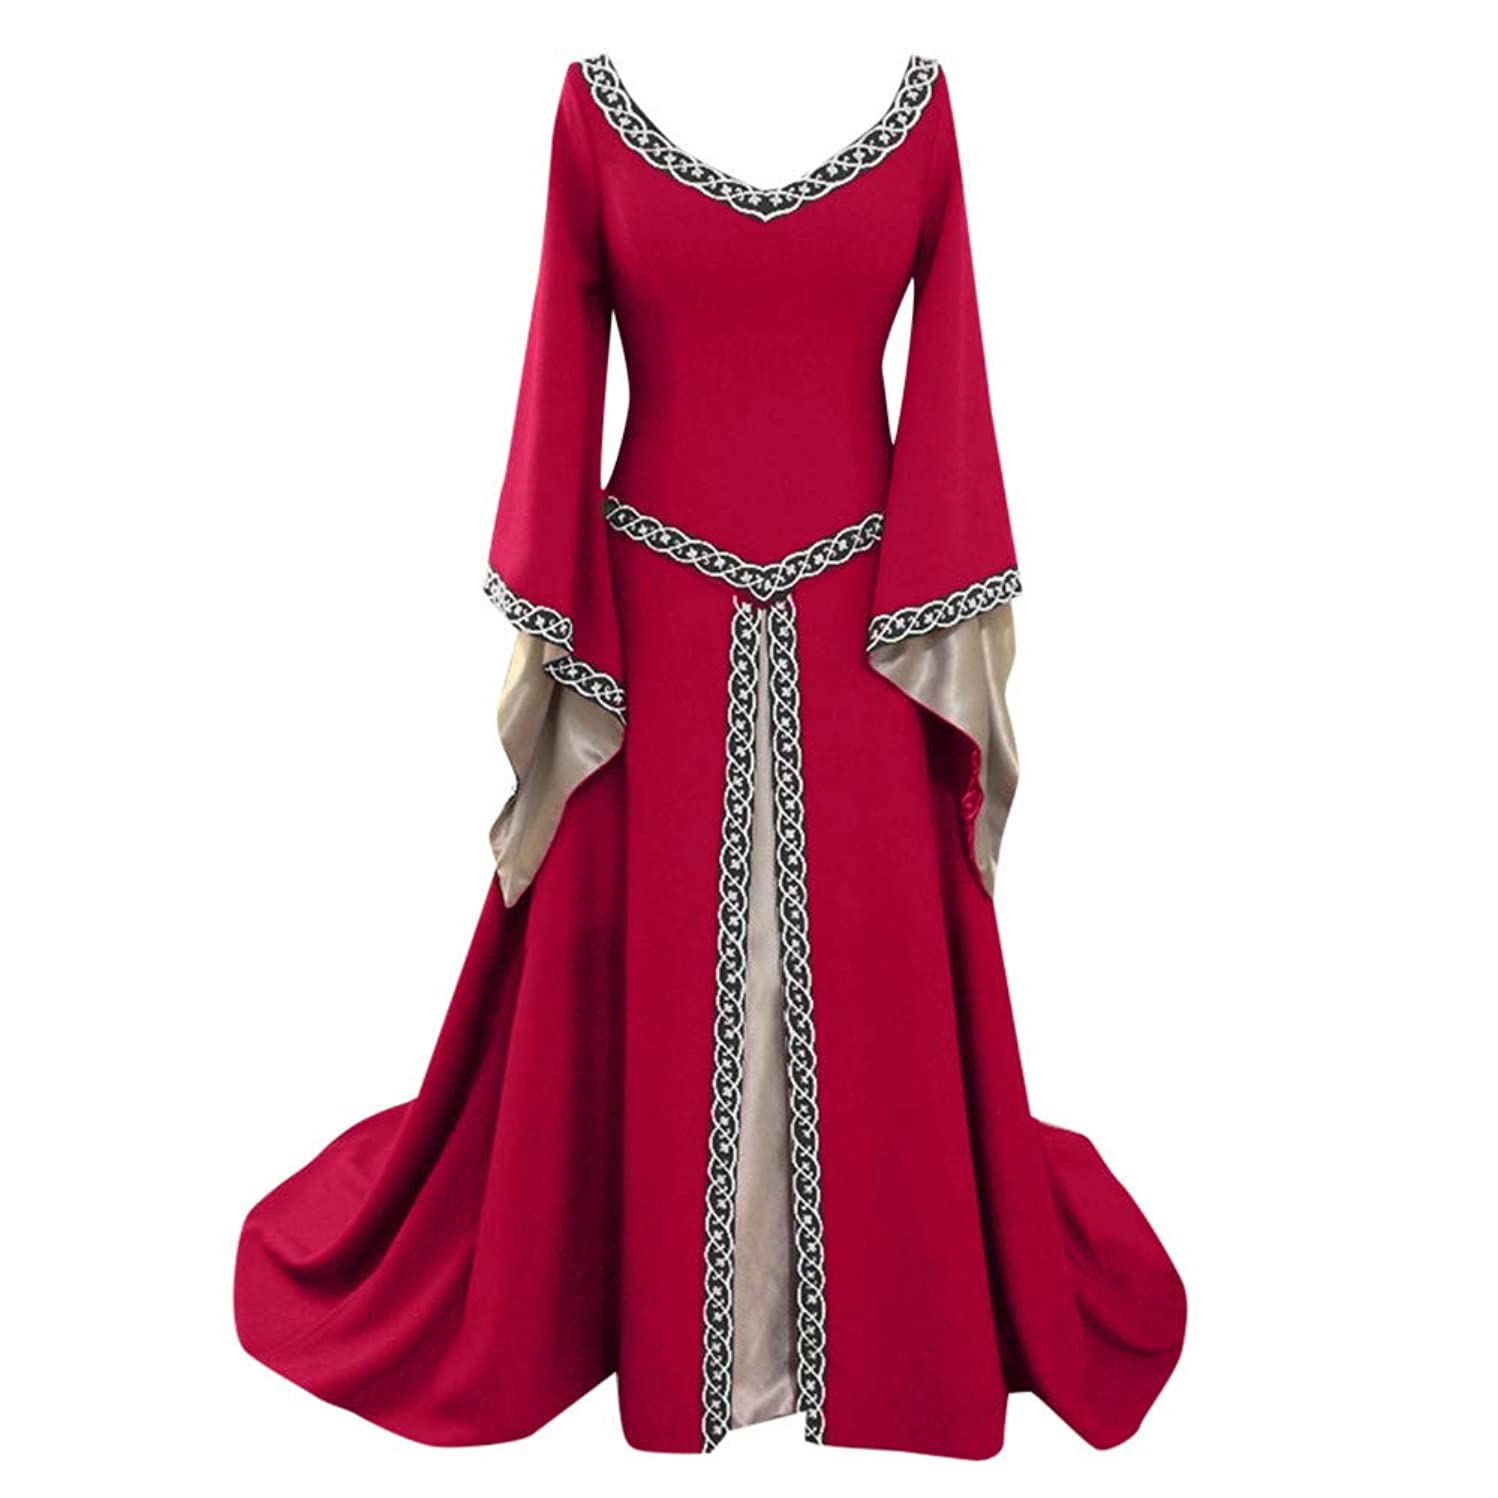 Caopixx Dress for Women Elegant 1950s Vintage Long Sleeve Medieval Dress Floor Length Cosplay Costume Princess Dress